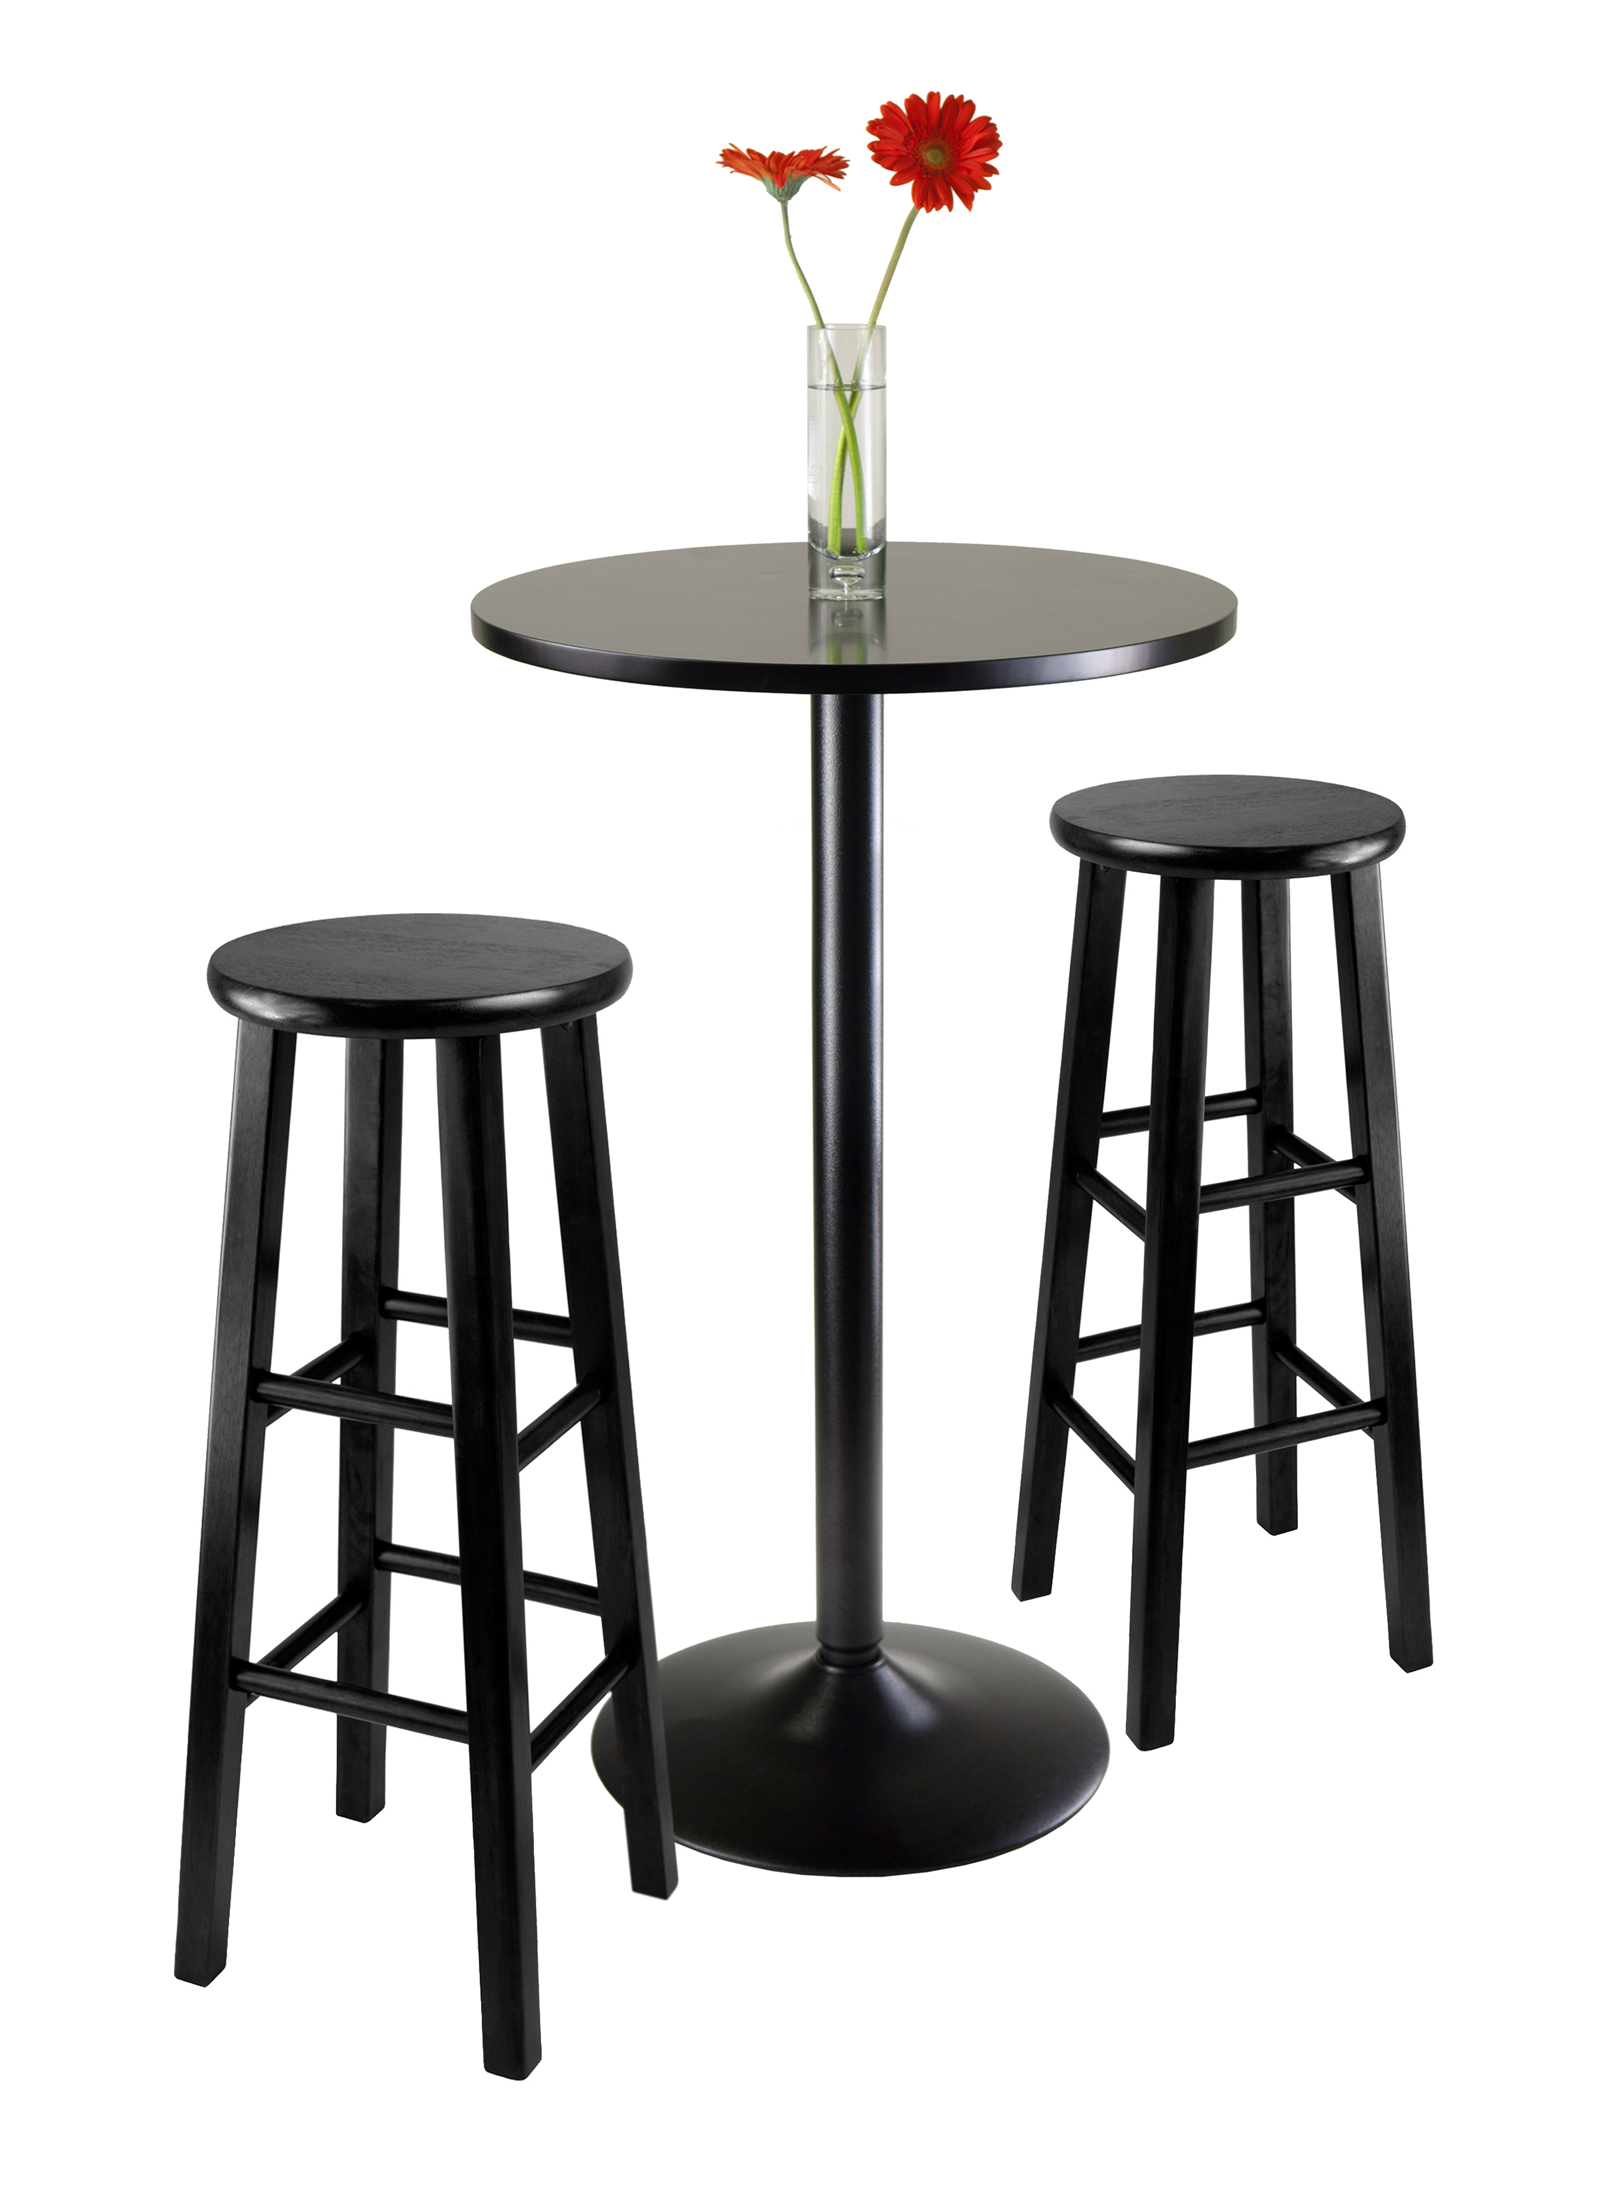 Winsome Wood Obsidian 3 Piece Round Black Pub Table Set With Regard To Most Recent Winsome 3 Piece Counter Height Dining Sets (Image 20 of 20)